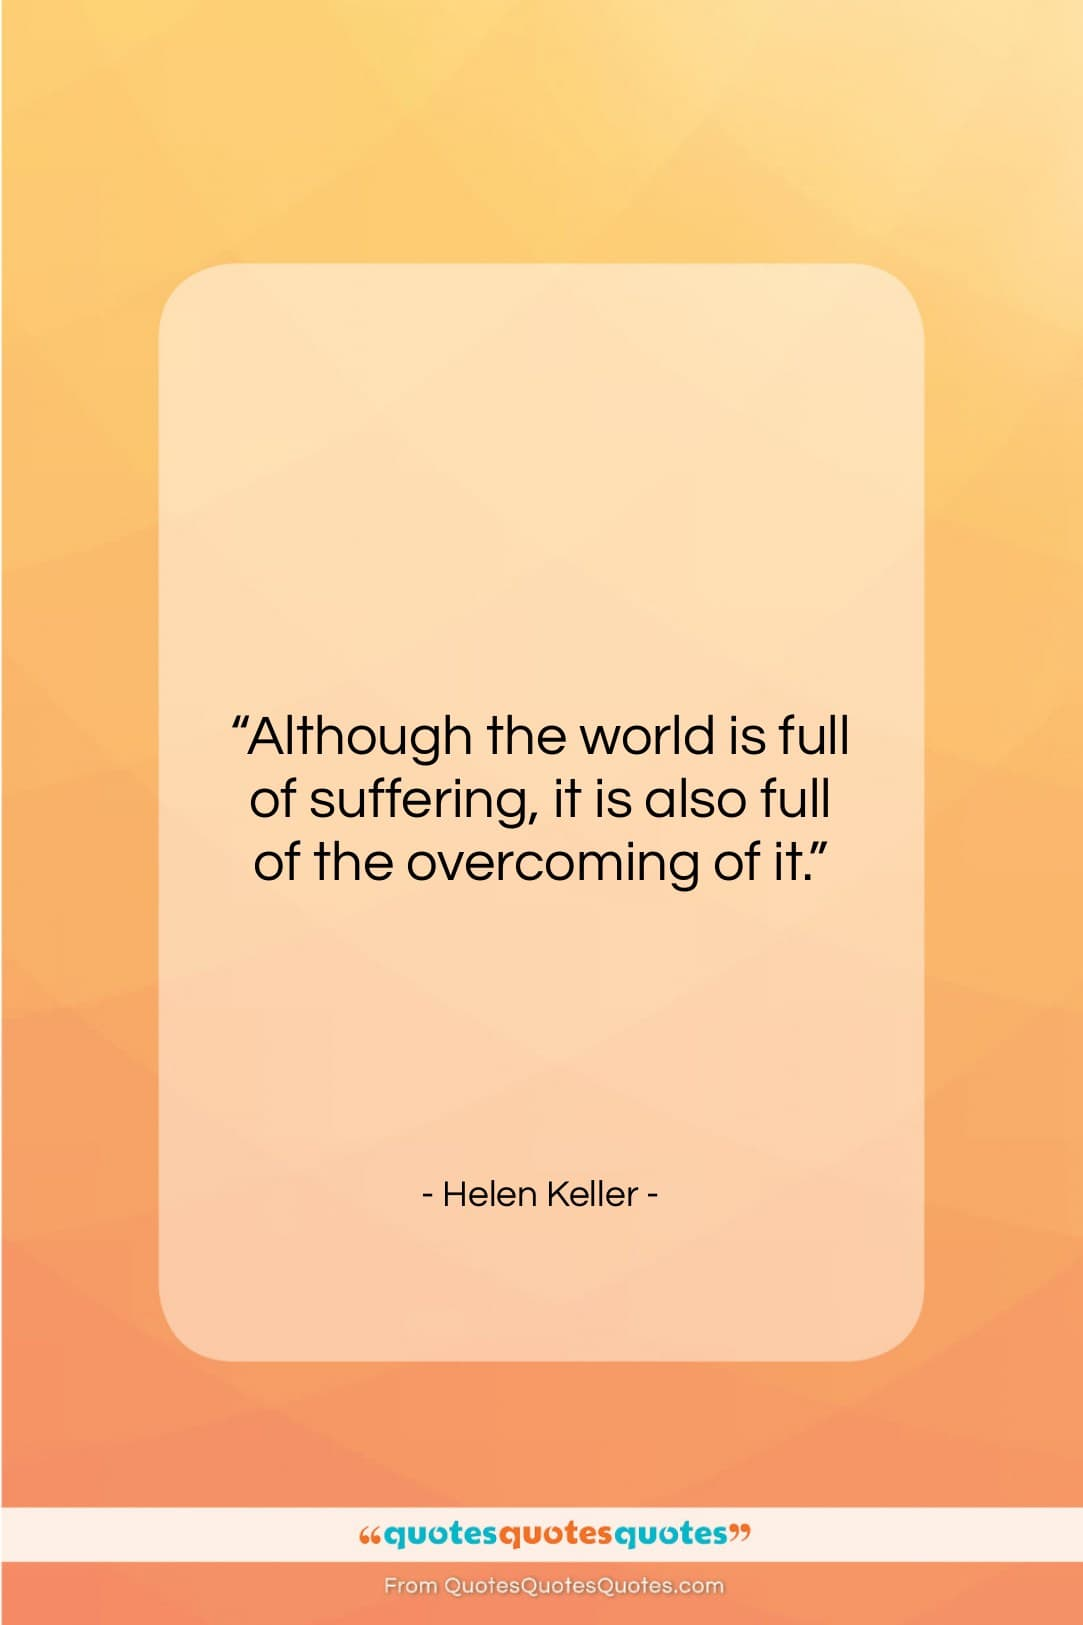 """Helen Keller quote: """"Although the world is full of suffering,…""""- at QuotesQuotesQuotes.com"""